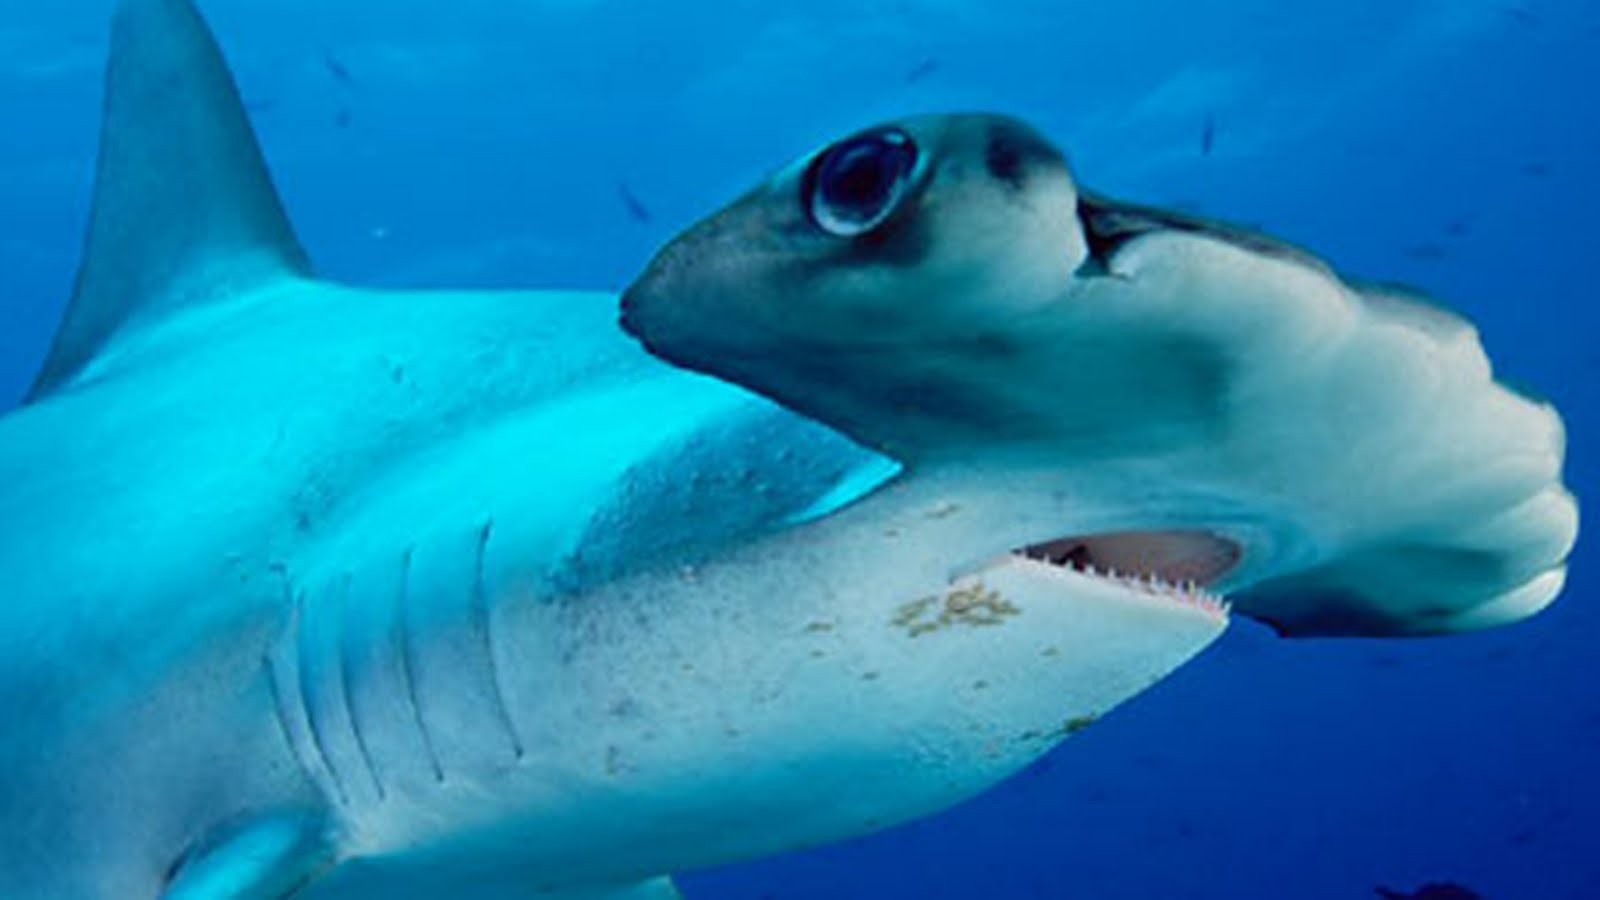 Rtsea blog observations on oceans sharks and nature for Are sharks fish